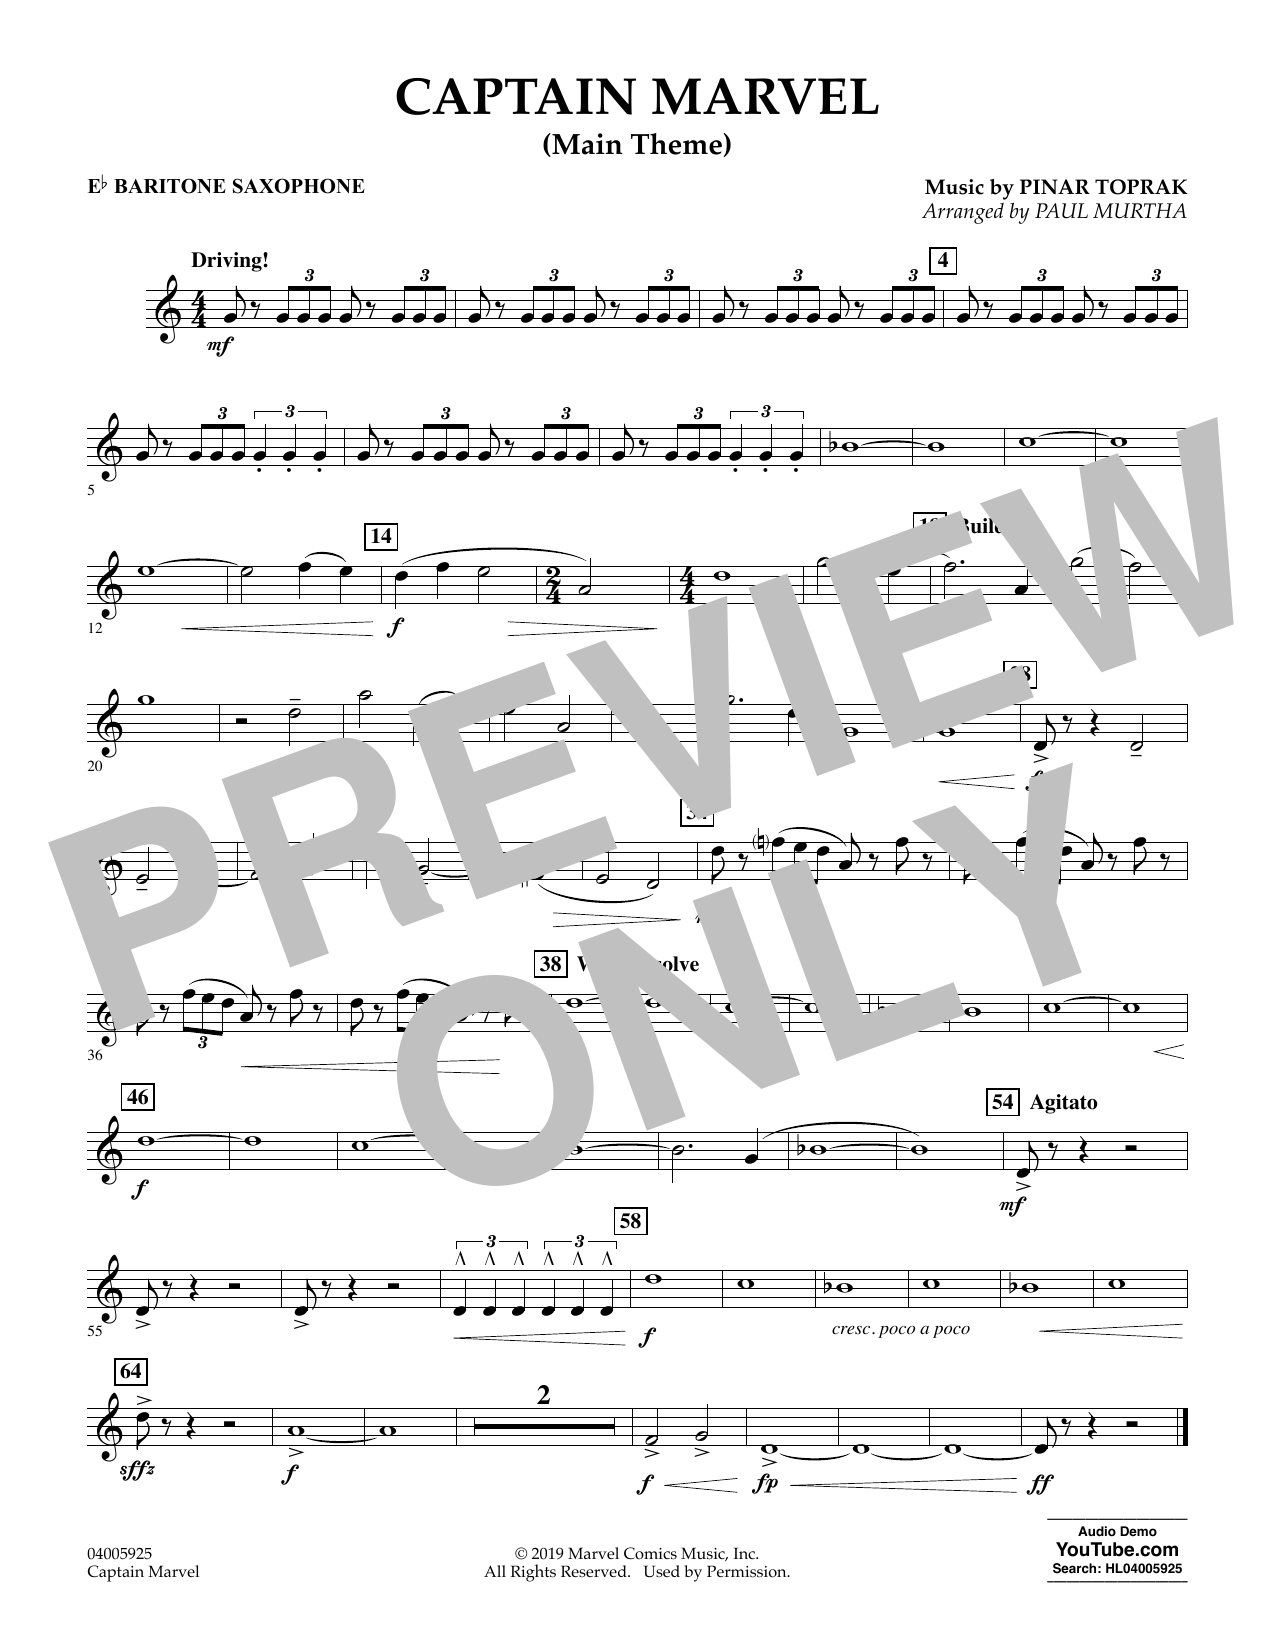 Pinar Toprak Captain Marvel (Main Theme) (arr. Paul Murtha) - Eb Baritone Saxophone sheet music preview music notes and score for Concert Band including 1 page(s)